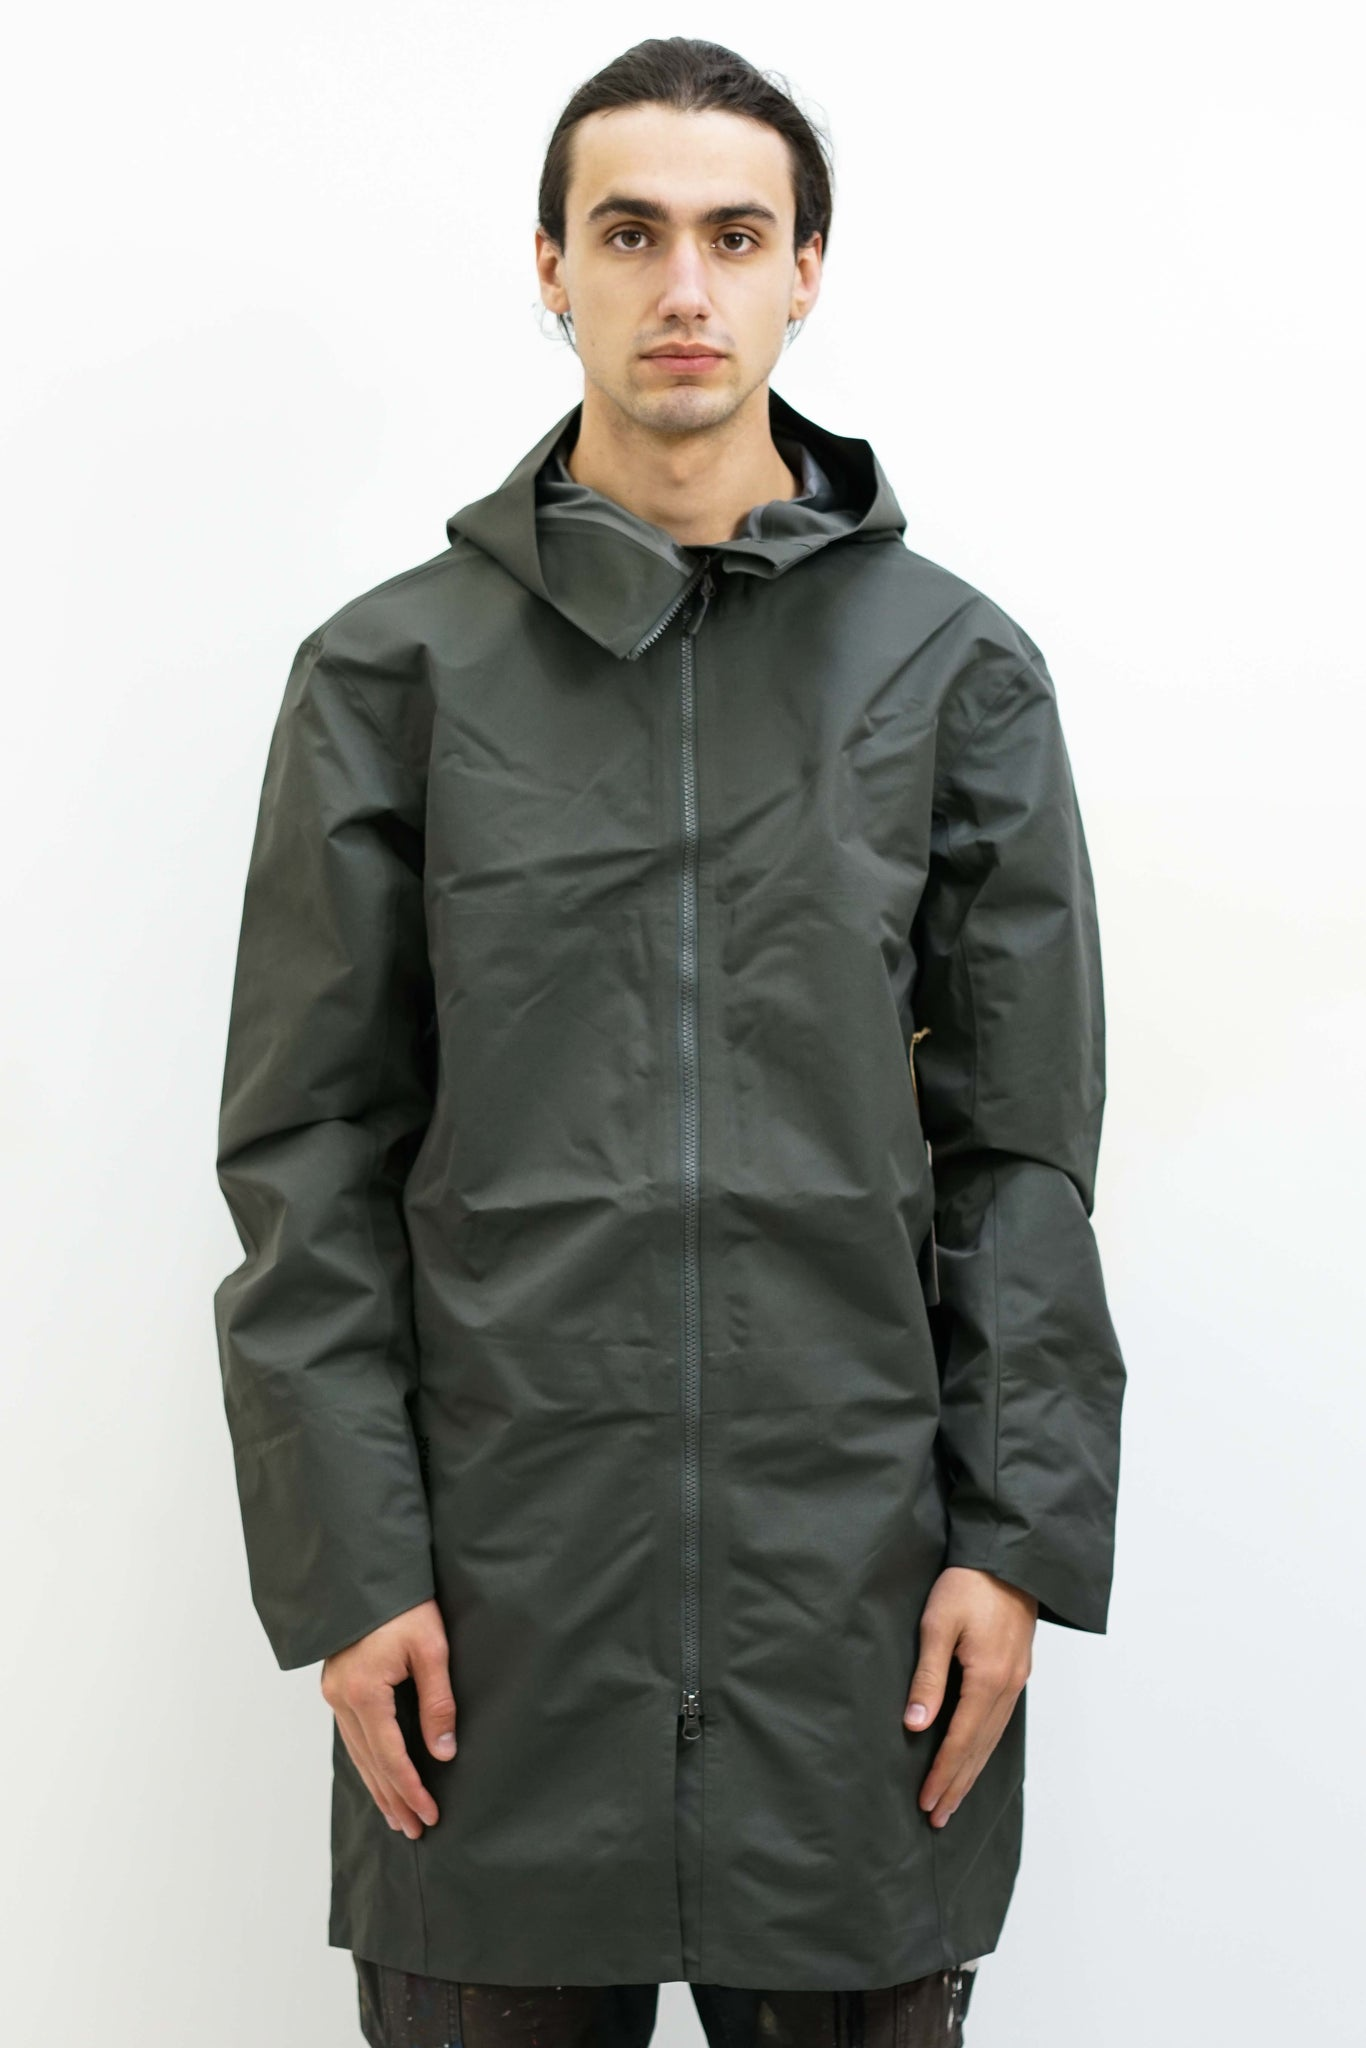 One Parka in Baremark Green